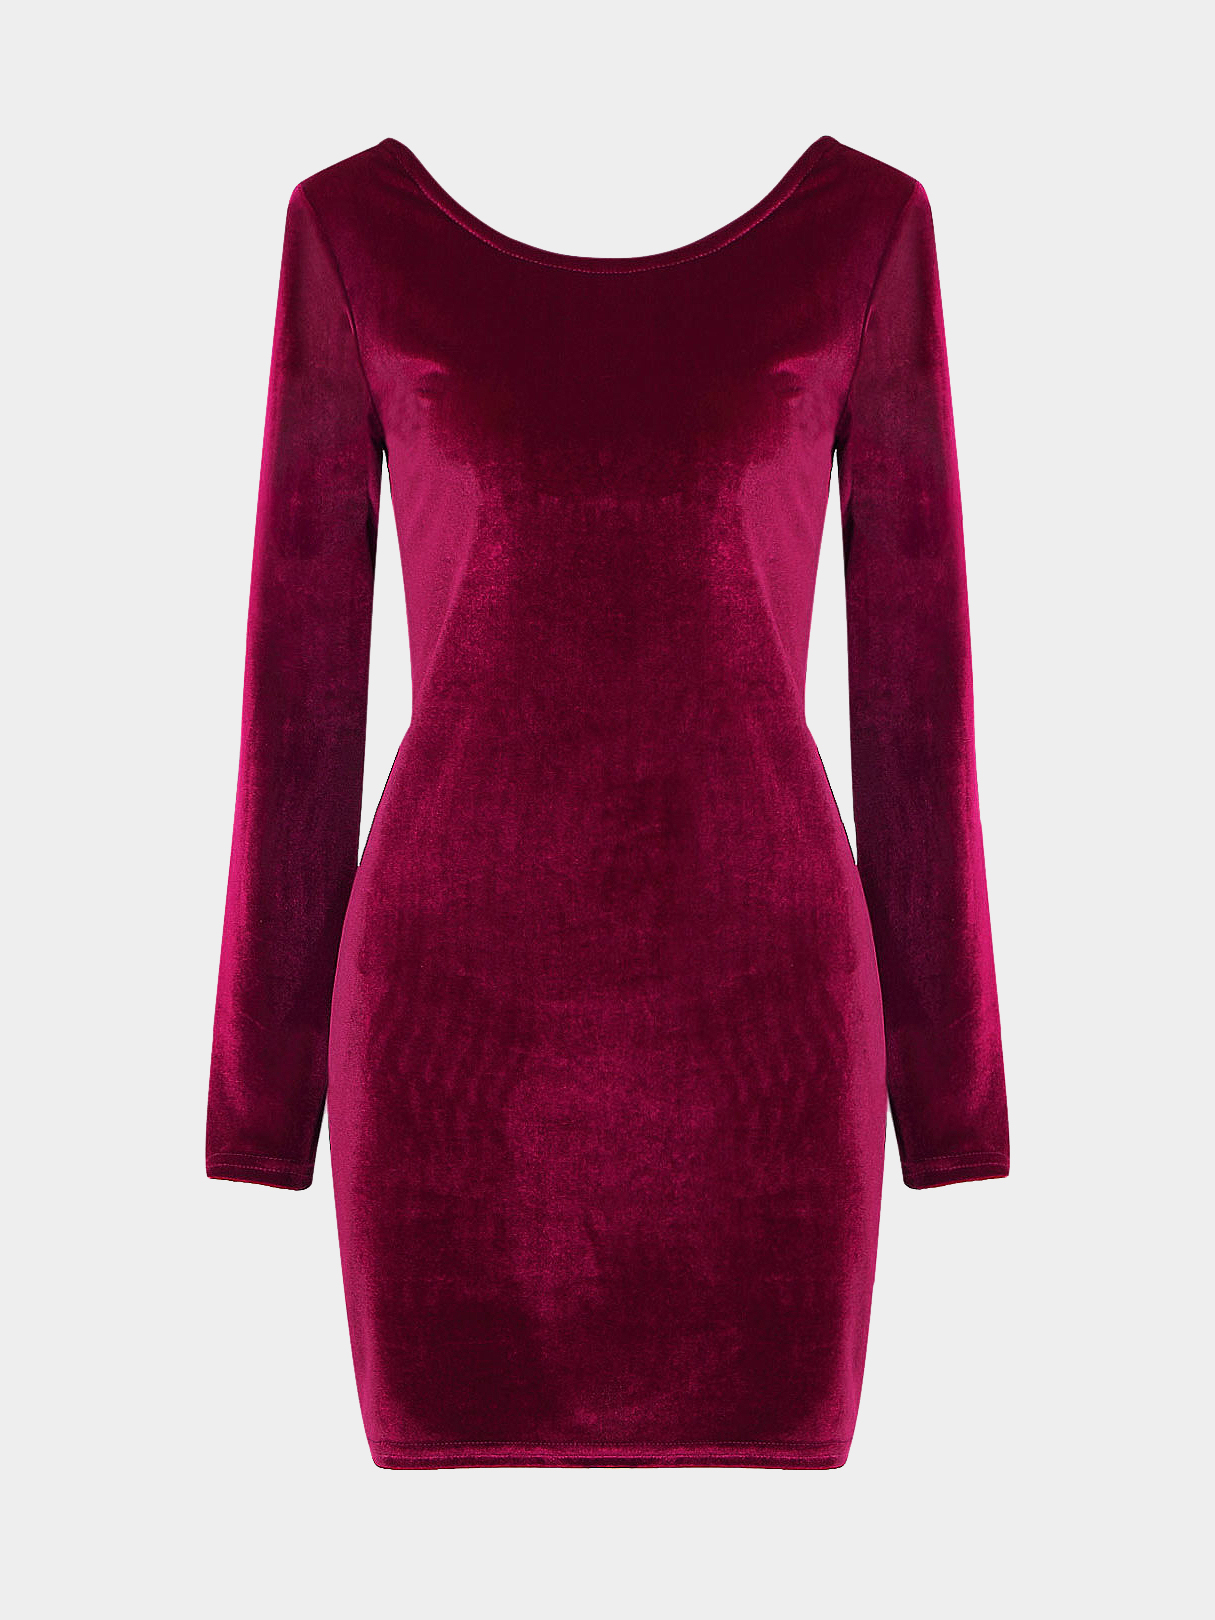 Burgundy Velvet Body-Conscious Dress with Open Back